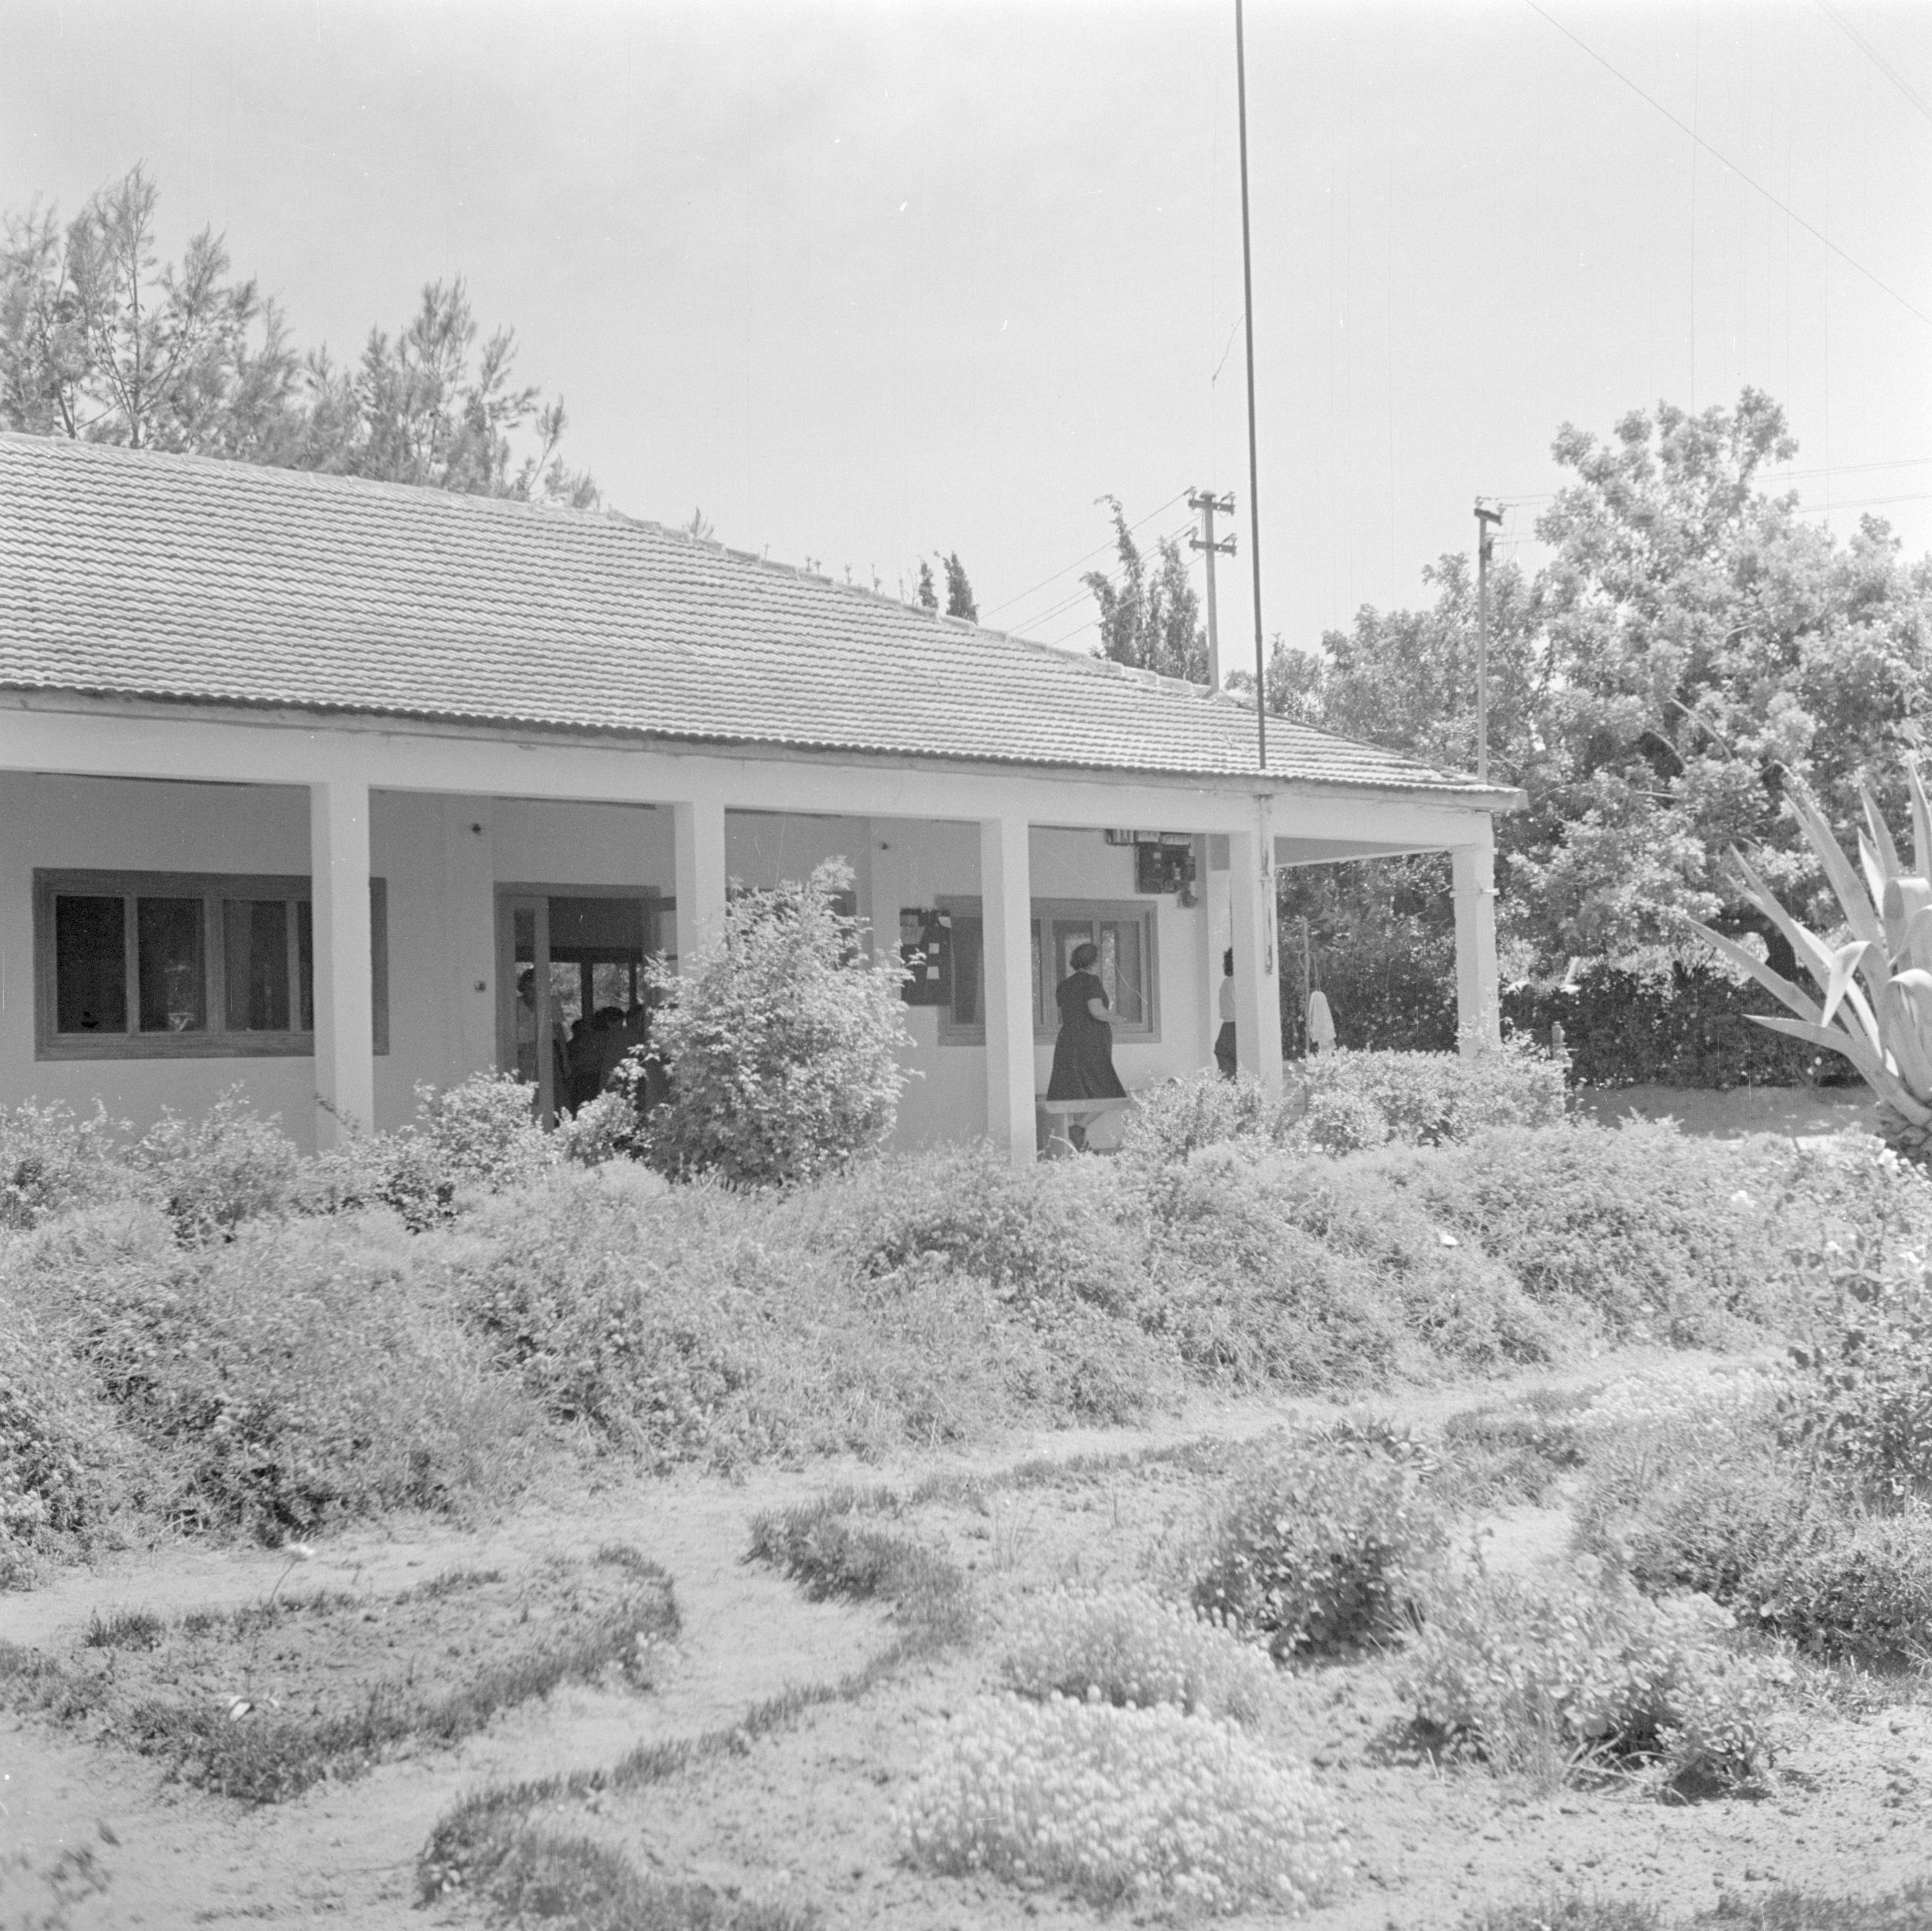 Filemoderne Bungalows In Kibboets Ramat Jochanan Bestanddeelnr 255